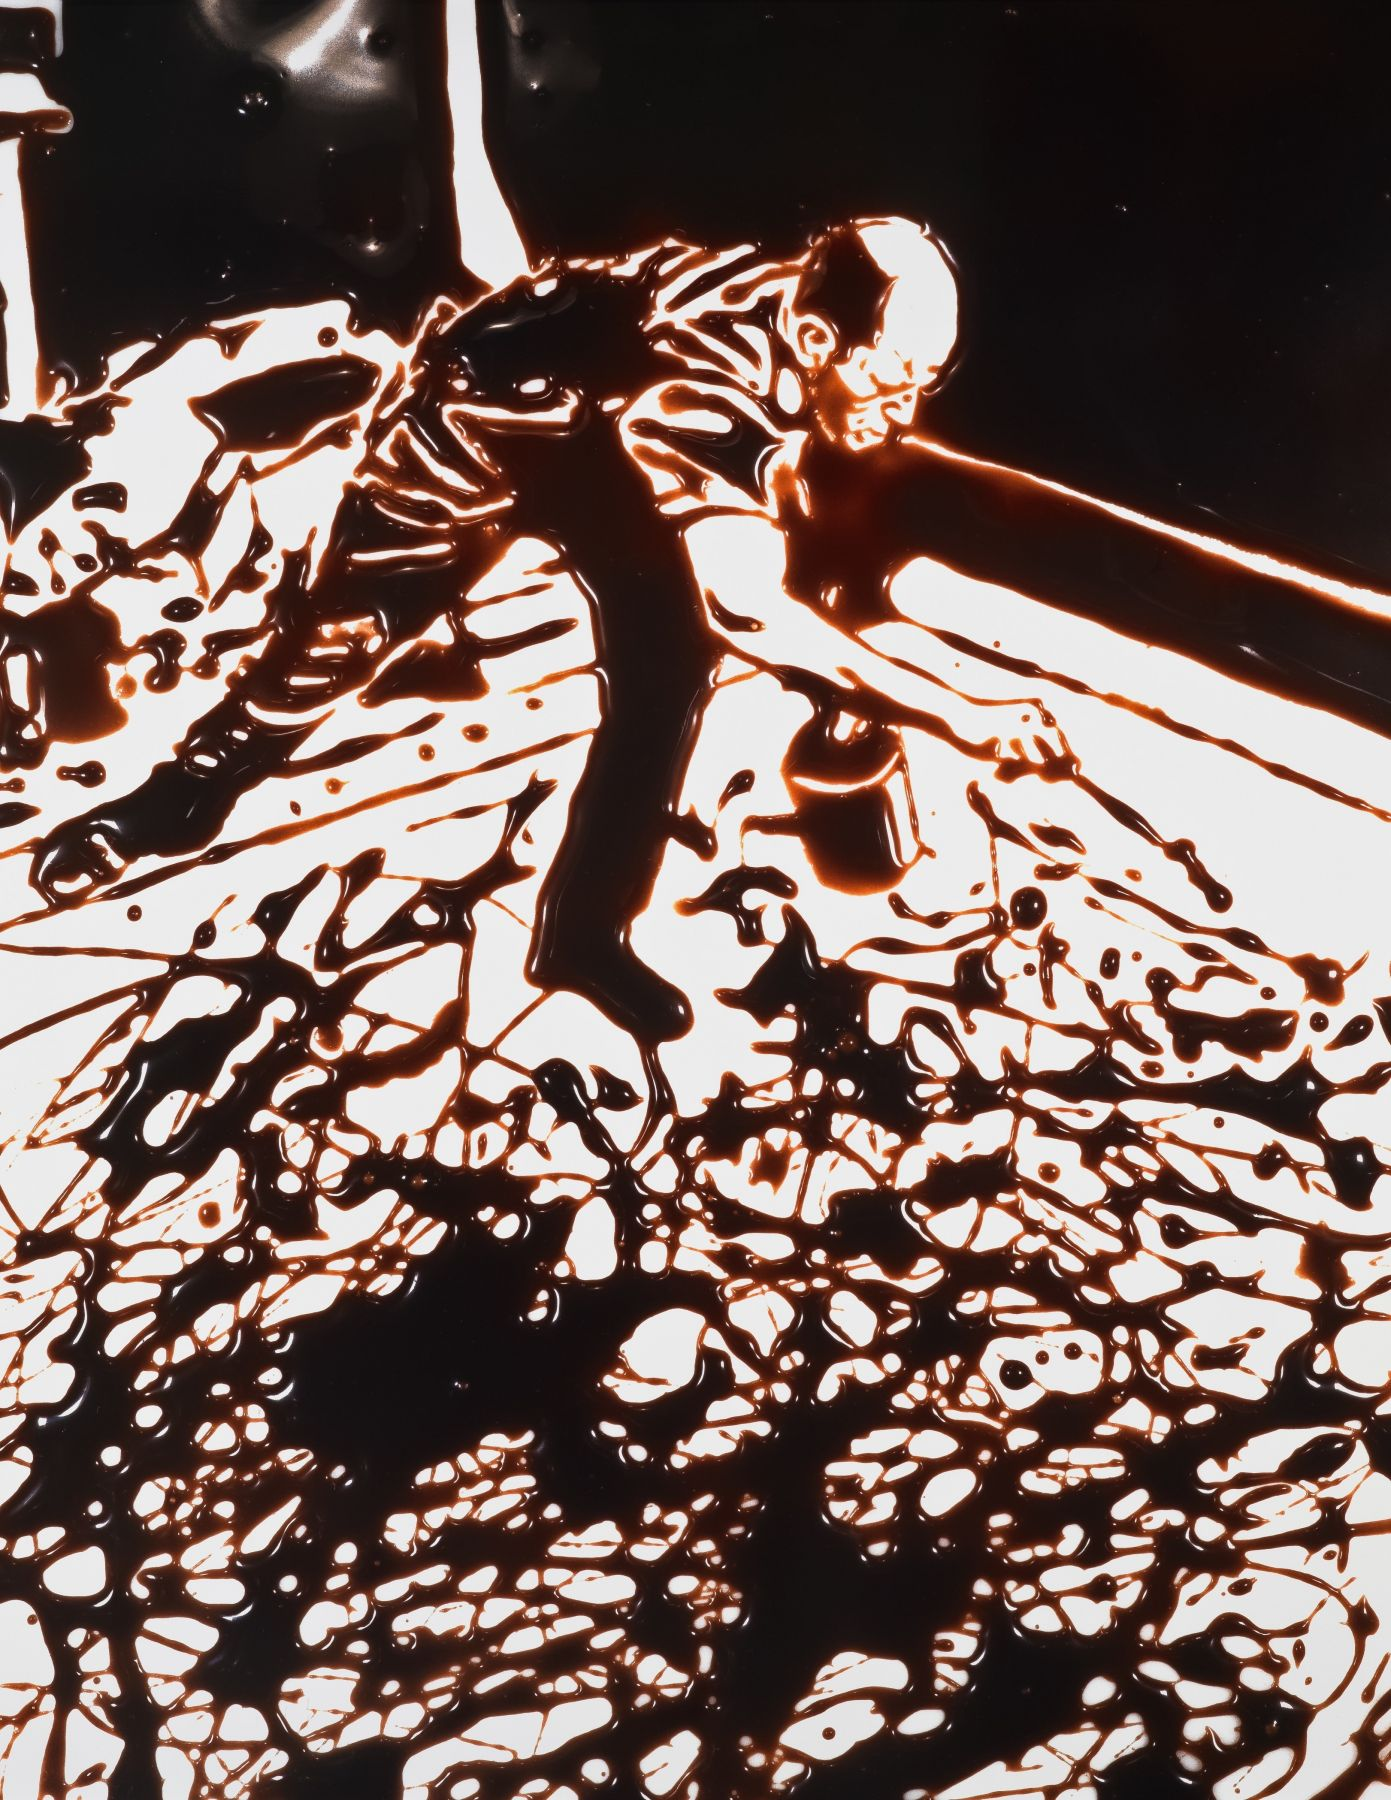 vik muniz Action Photo, After Hans Namuth Photographing Jackson Pollock, from the Pictures of Chocolate series